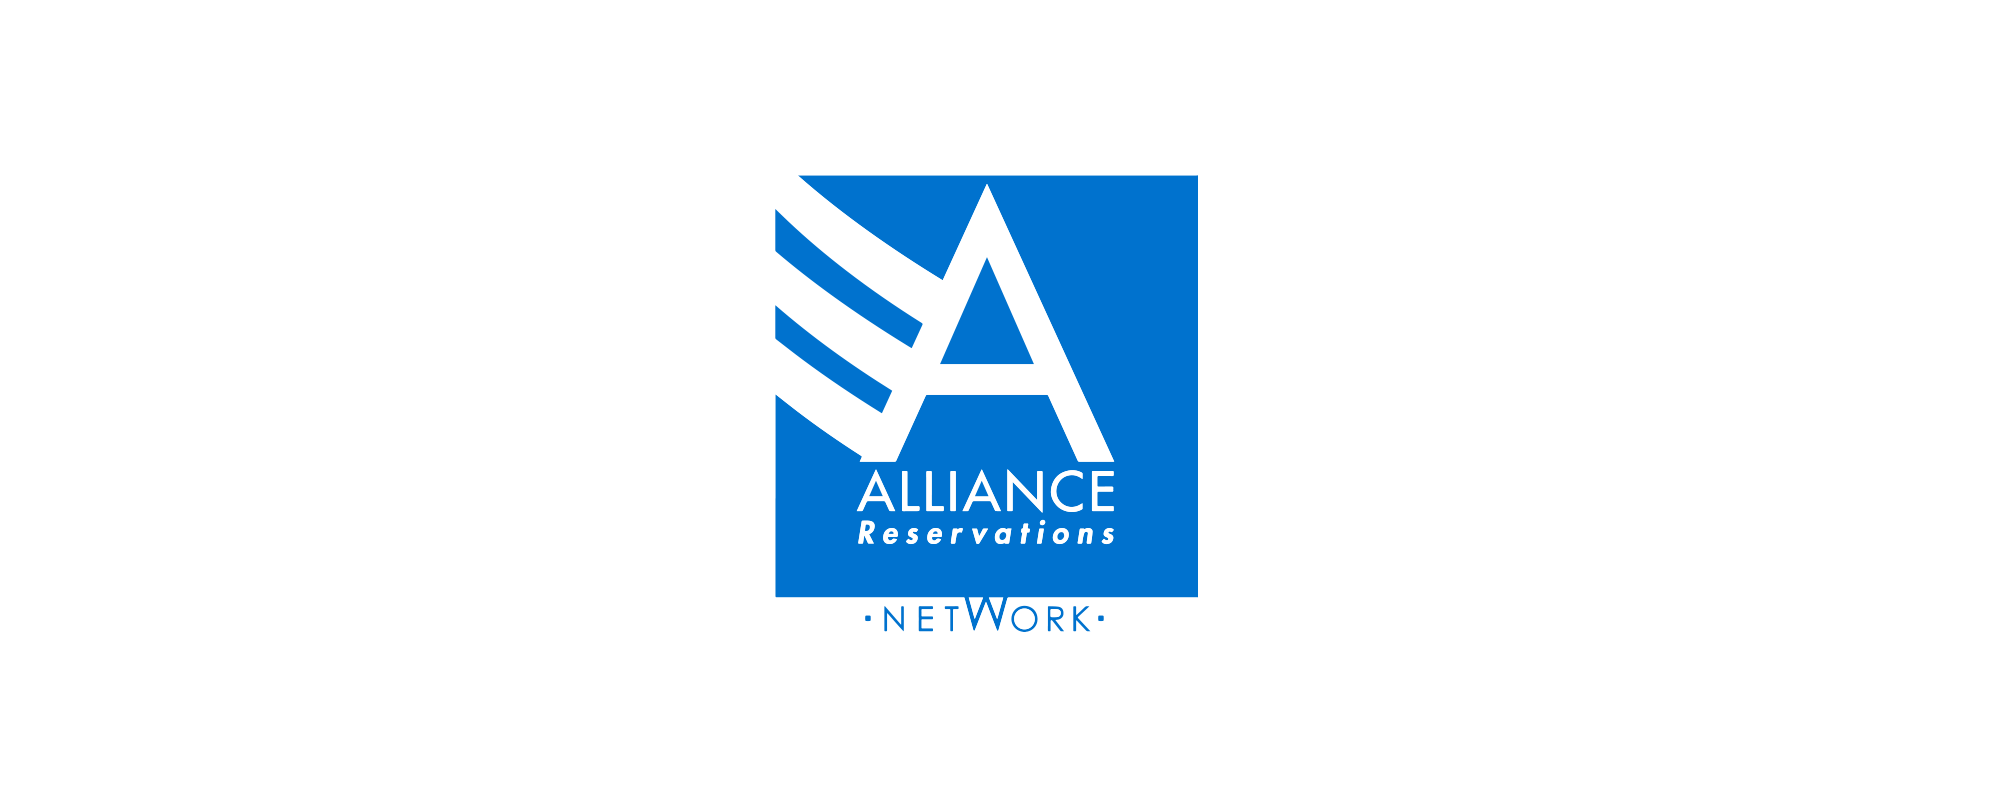 Alliance Reservations Network logo